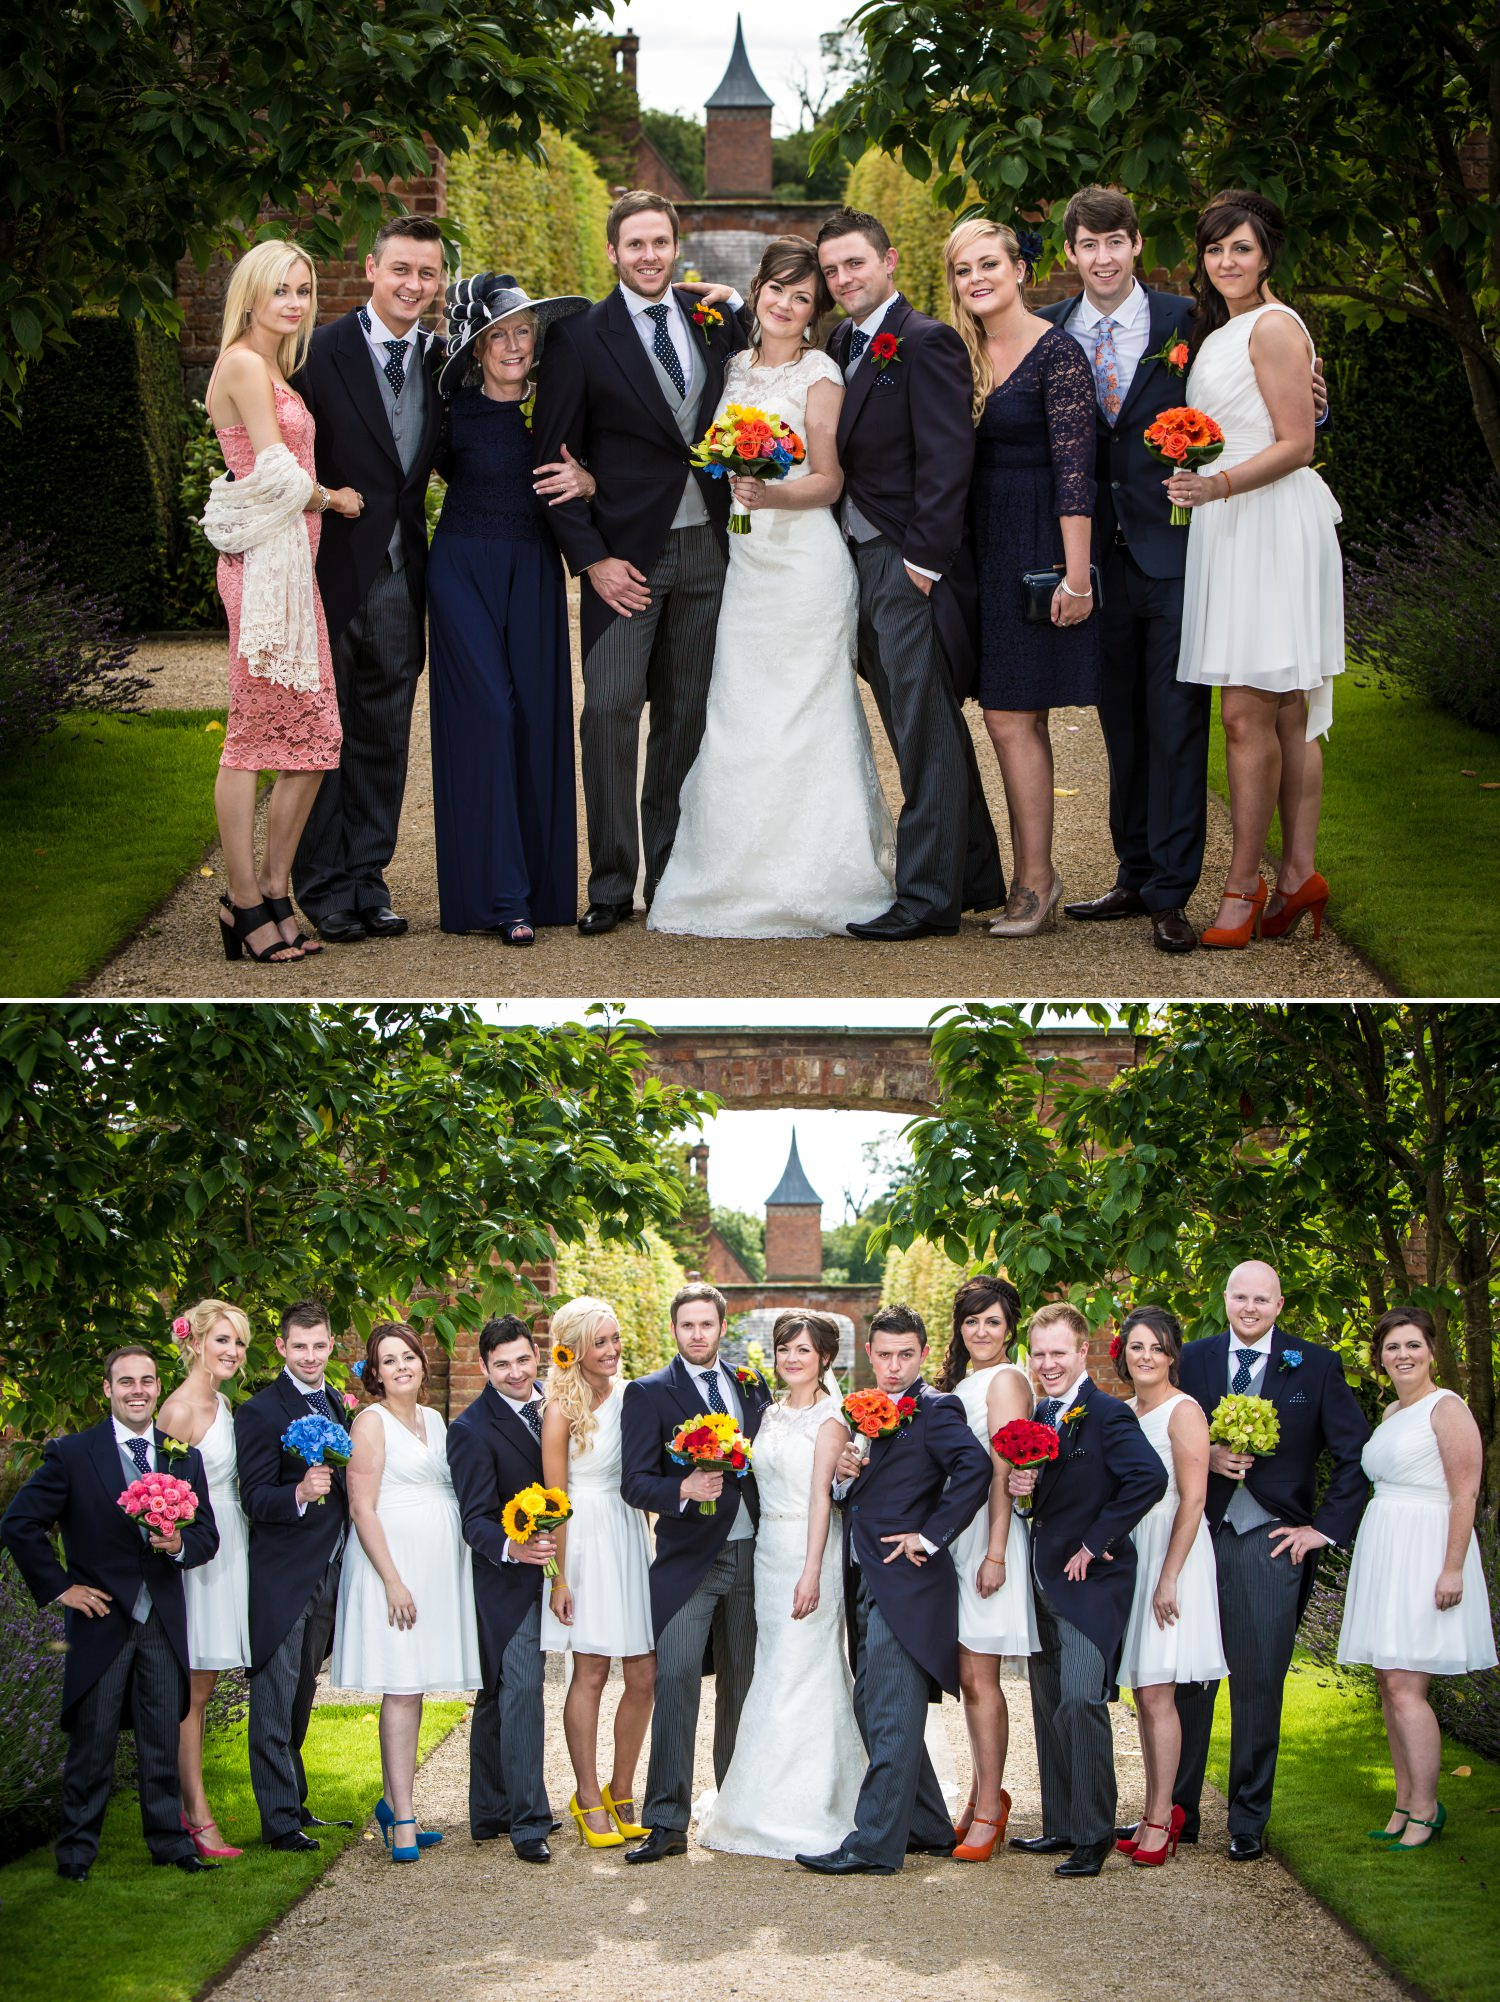 wedding group photography at Cheshire venue Combermere Abbey